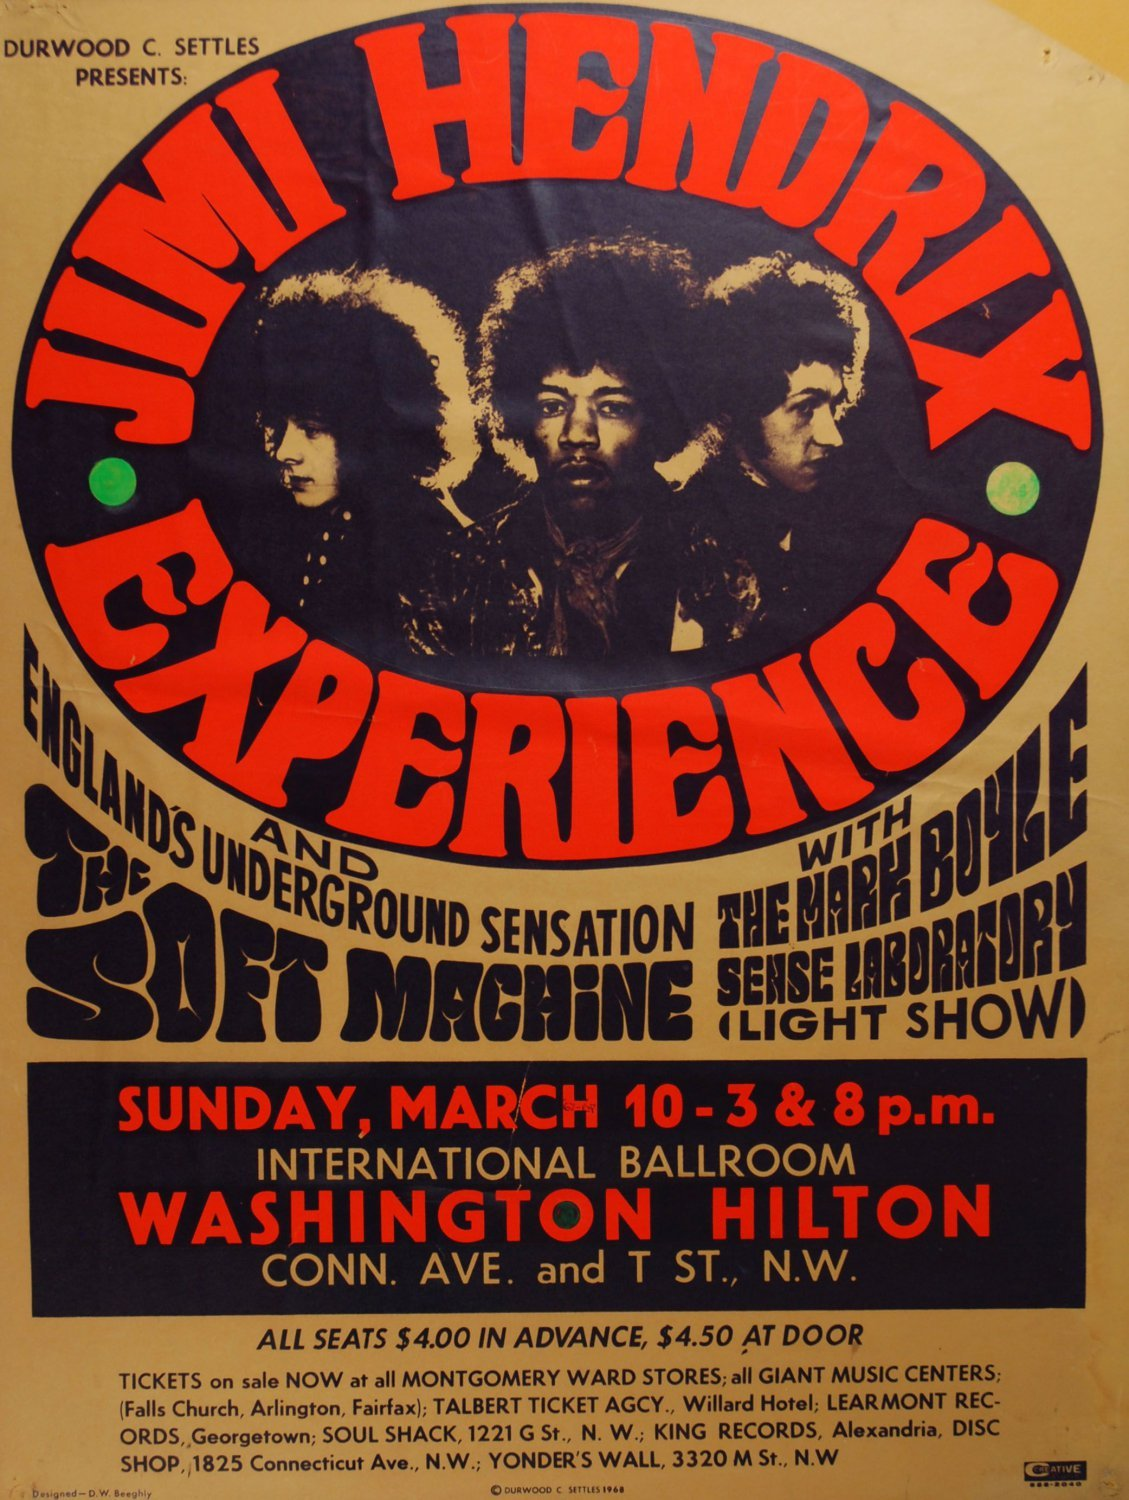 Jimi Hendrix Experience Concert 18x28 inches Poster Print